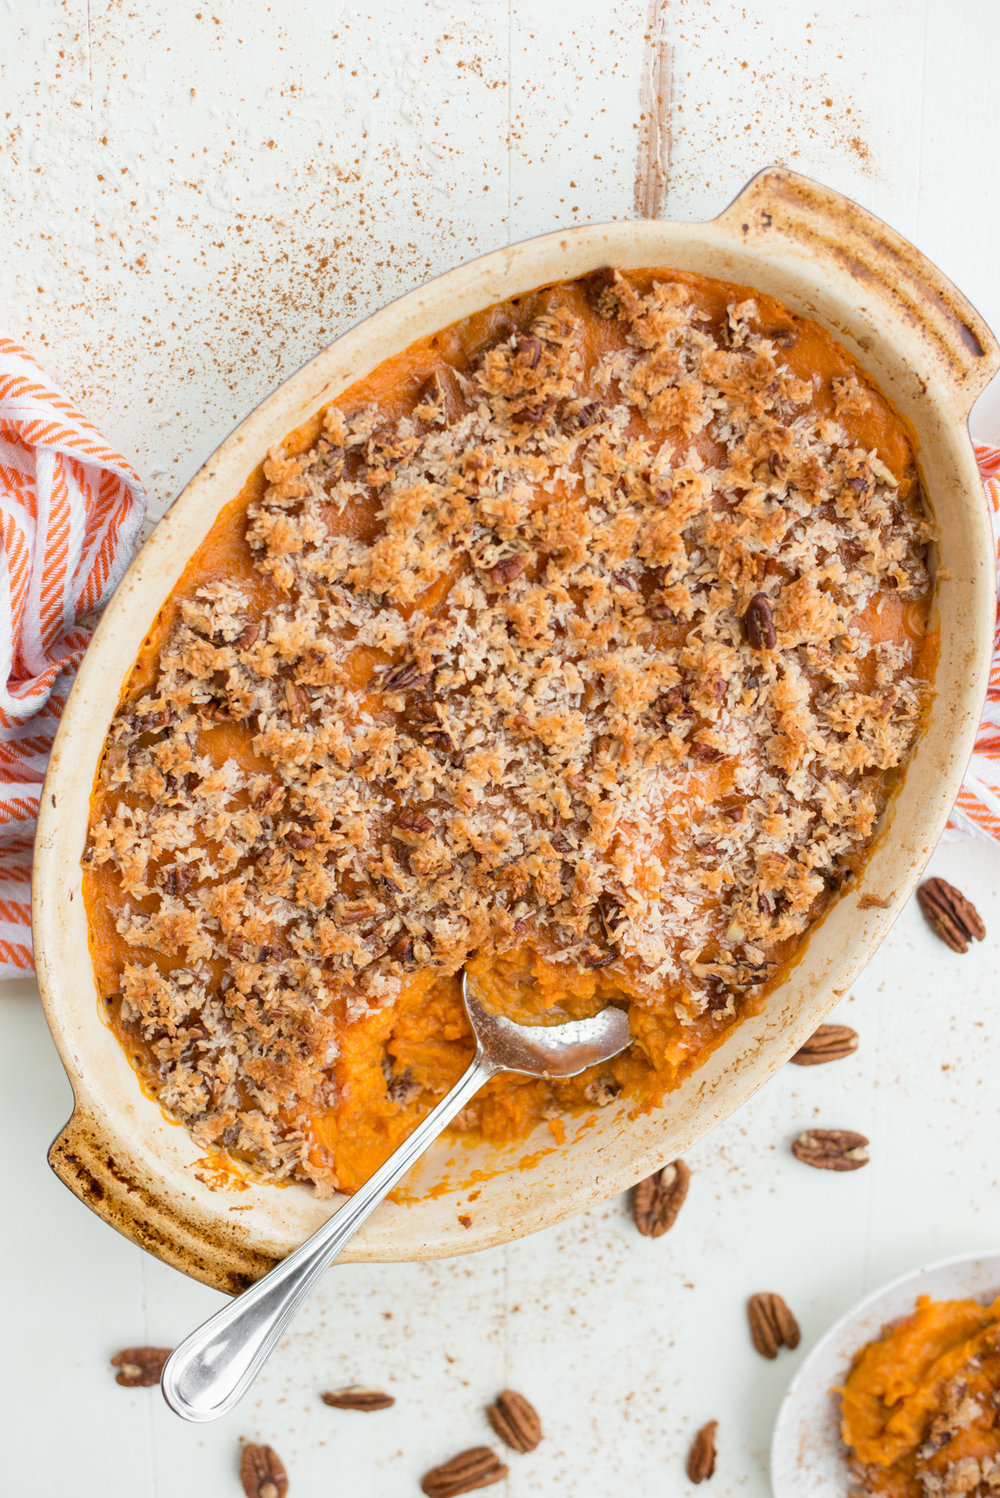 Sweet, rich and easy to prepare, Sweet Potato Casserole (Grain-Free, Dairy-Free) is naturally grain-free, gluten-free, dairy-free, naturally sweetened and completely satisfying.